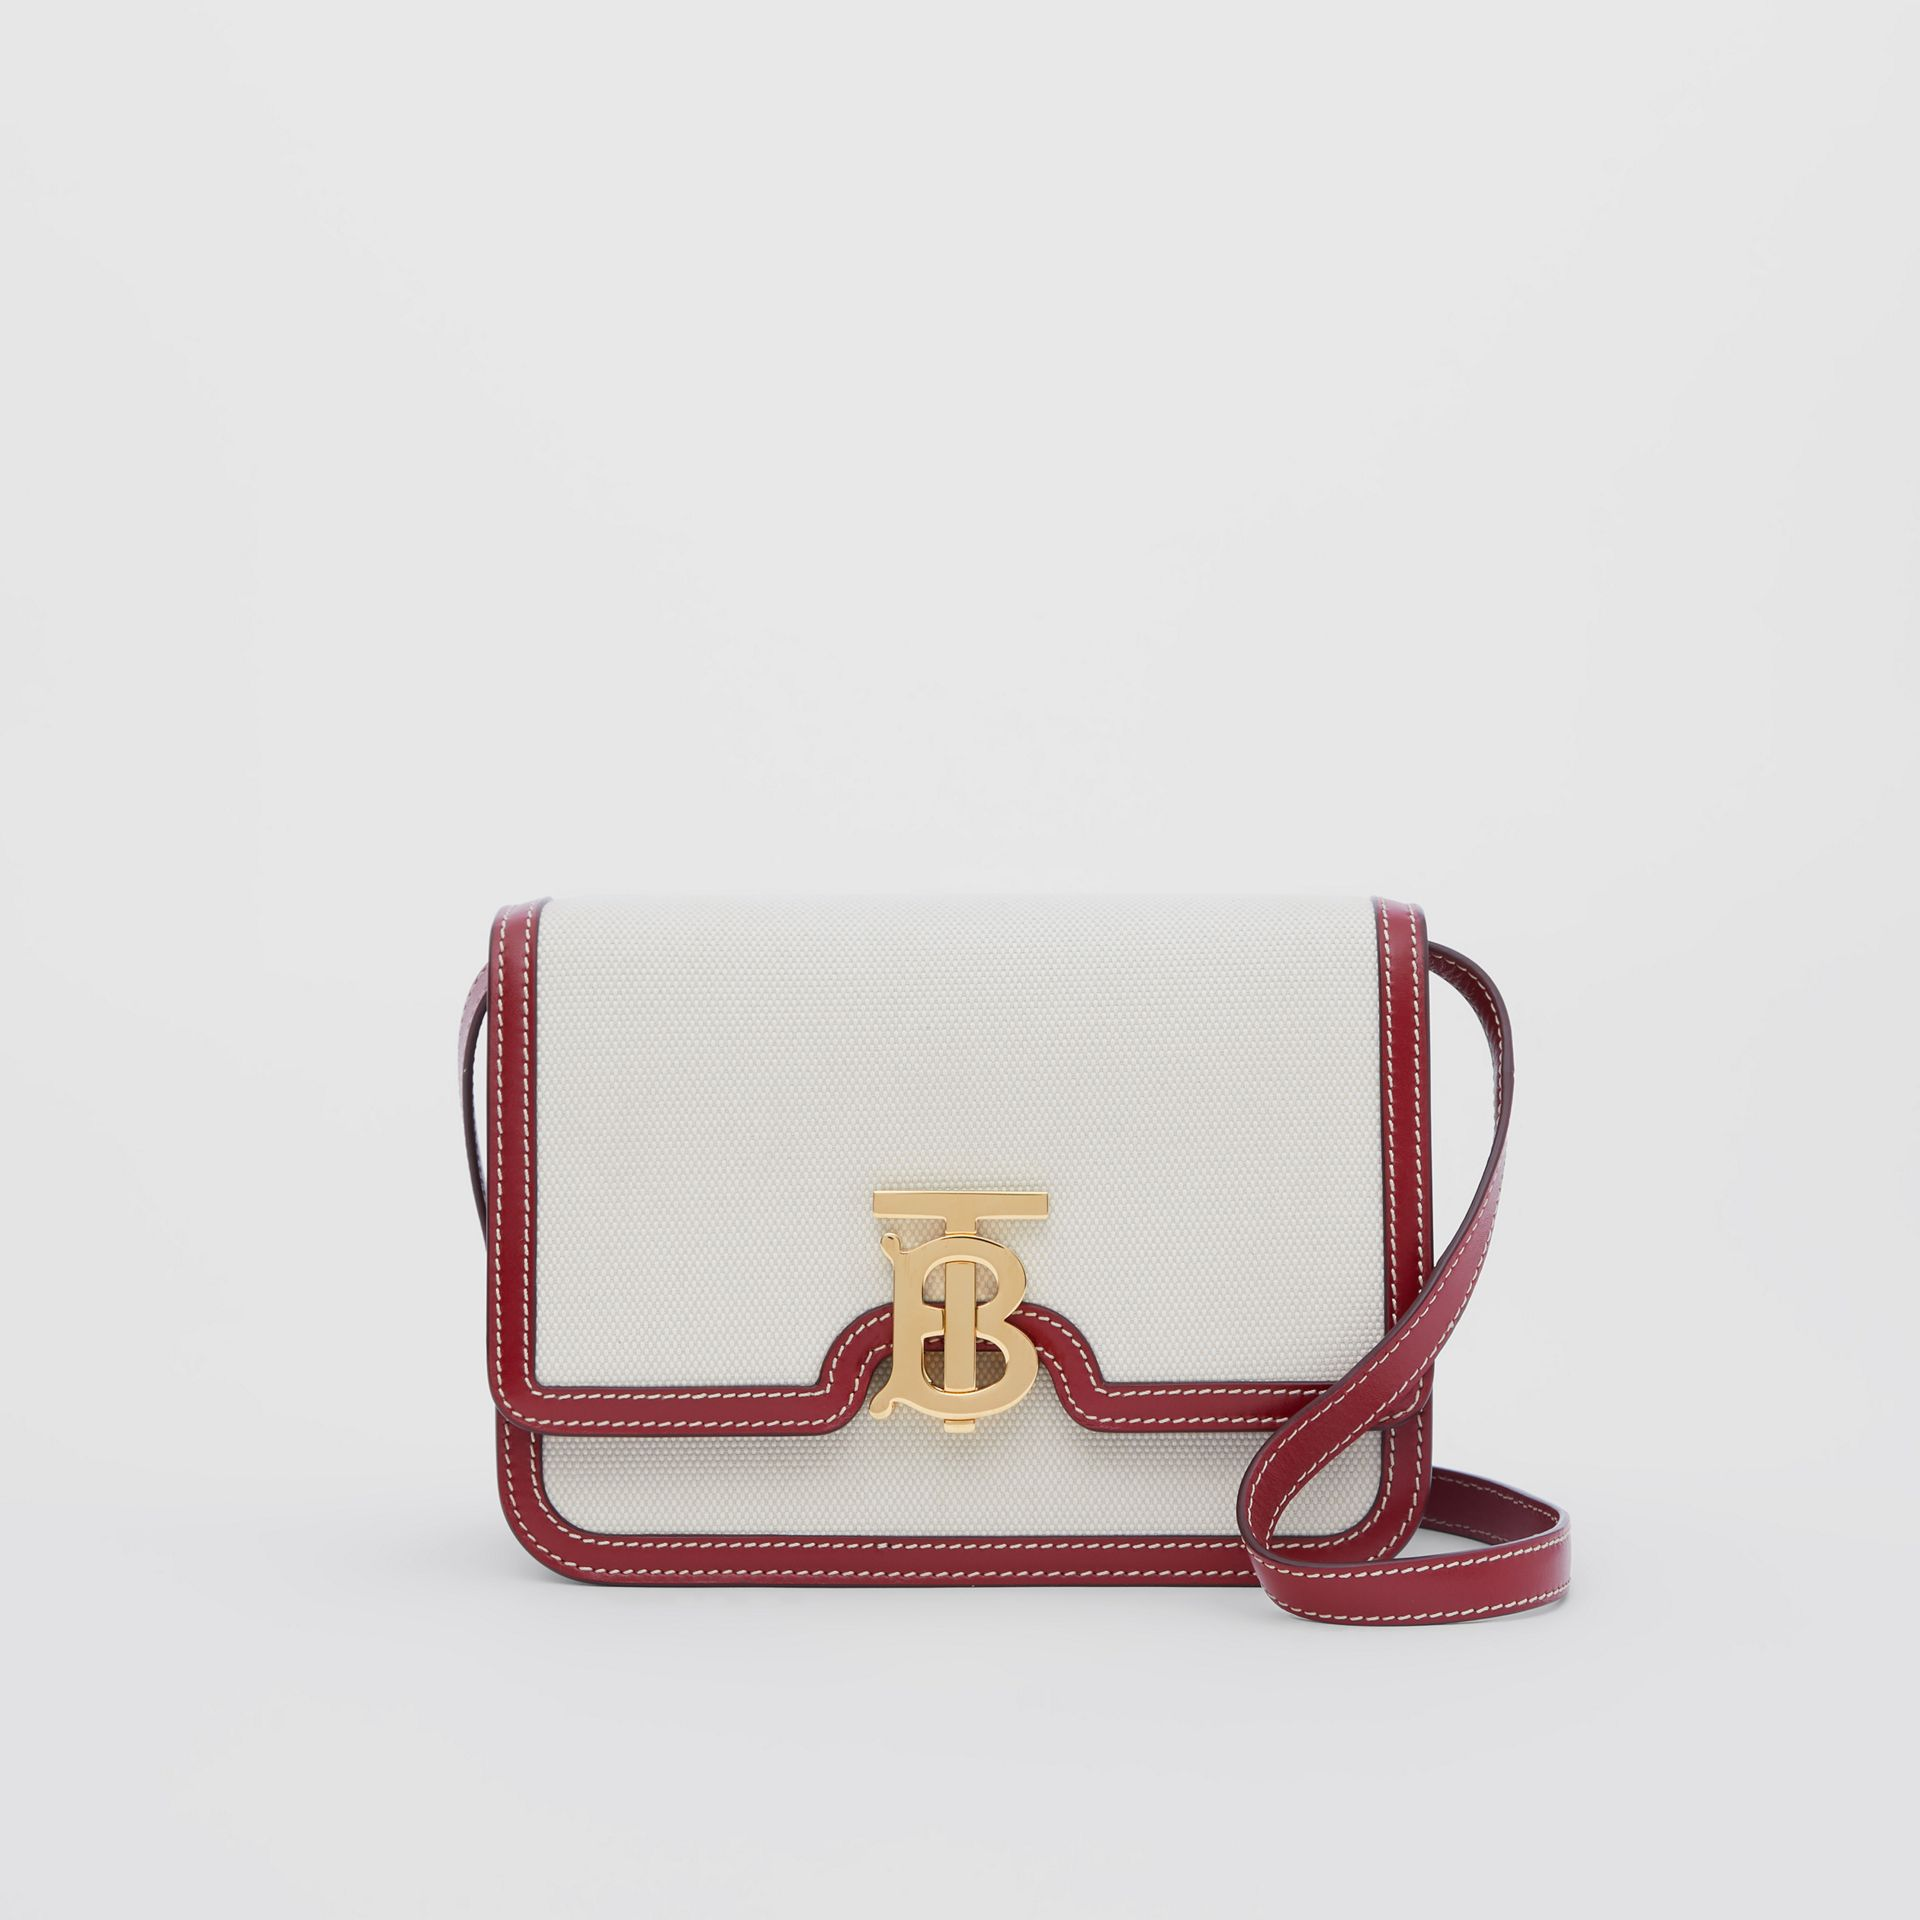 Small Two-tone Canvas and Leather TB Bag in Natural/dark Carmine - Women | Burberry - gallery image 0